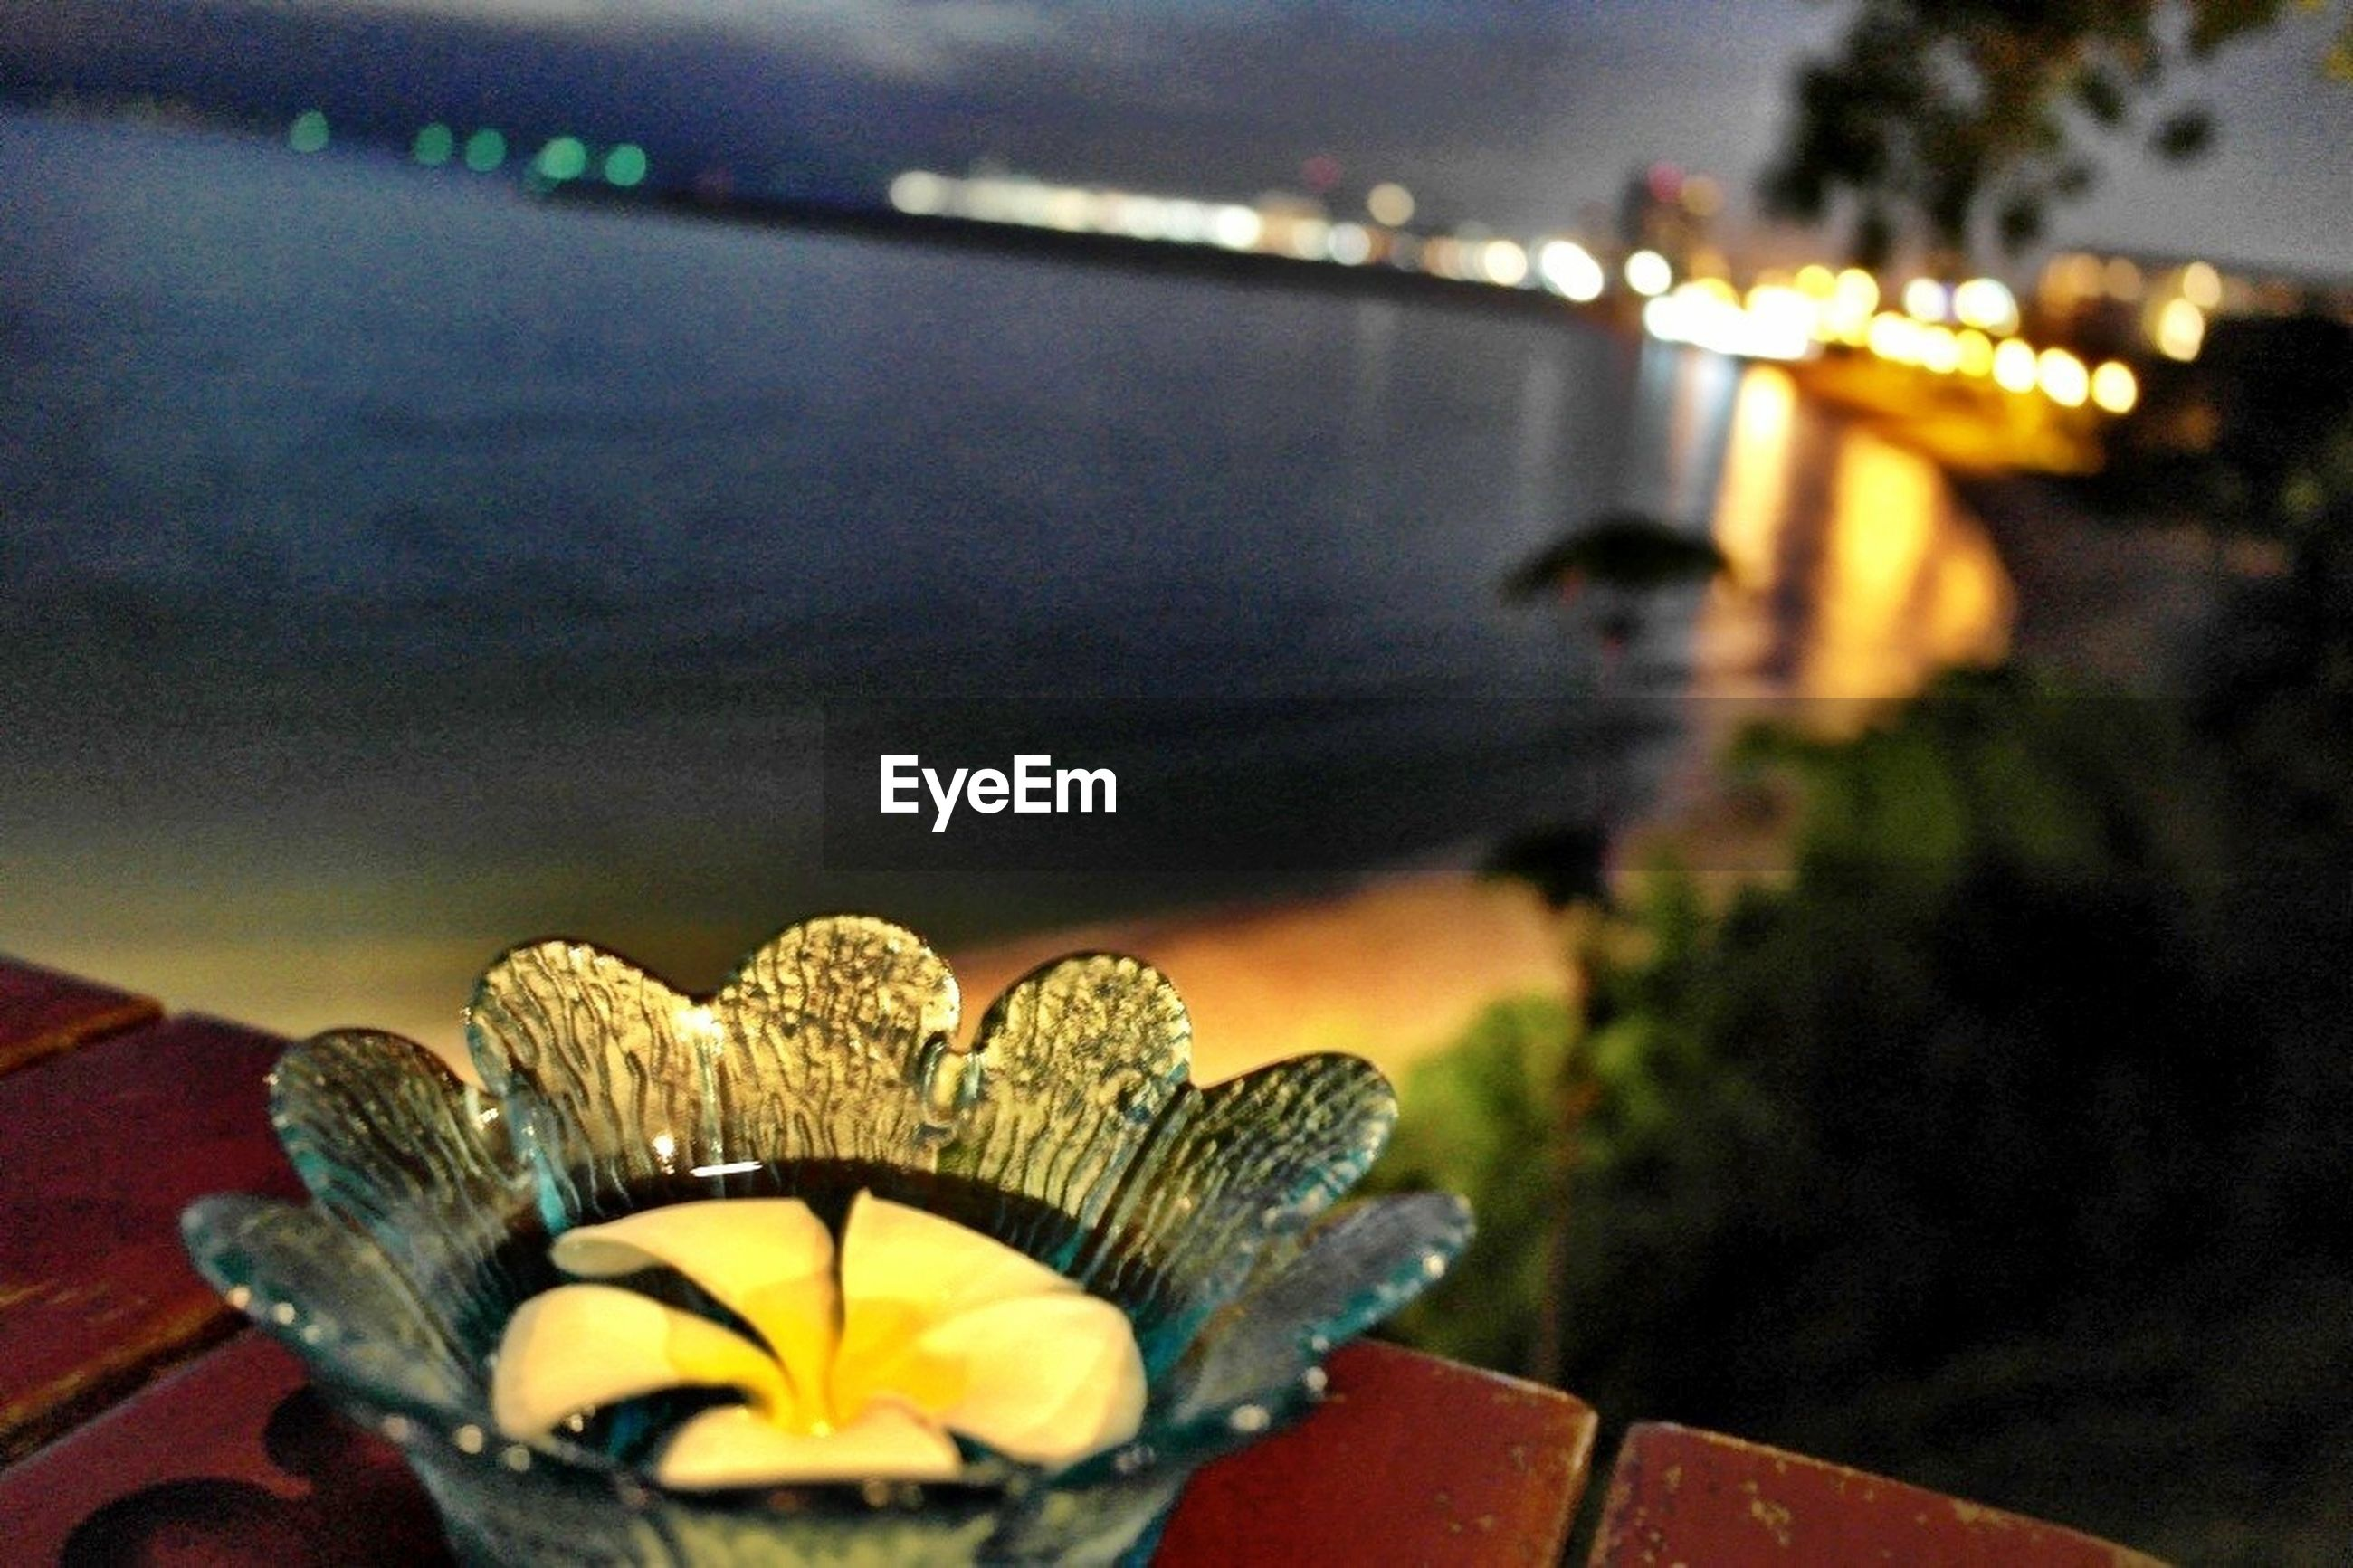 focus on foreground, illuminated, close-up, sky, decoration, sunset, lighting equipment, night, outdoors, no people, dusk, orange color, low angle view, selective focus, sunlight, yellow, lens flare, nature, pattern, tradition